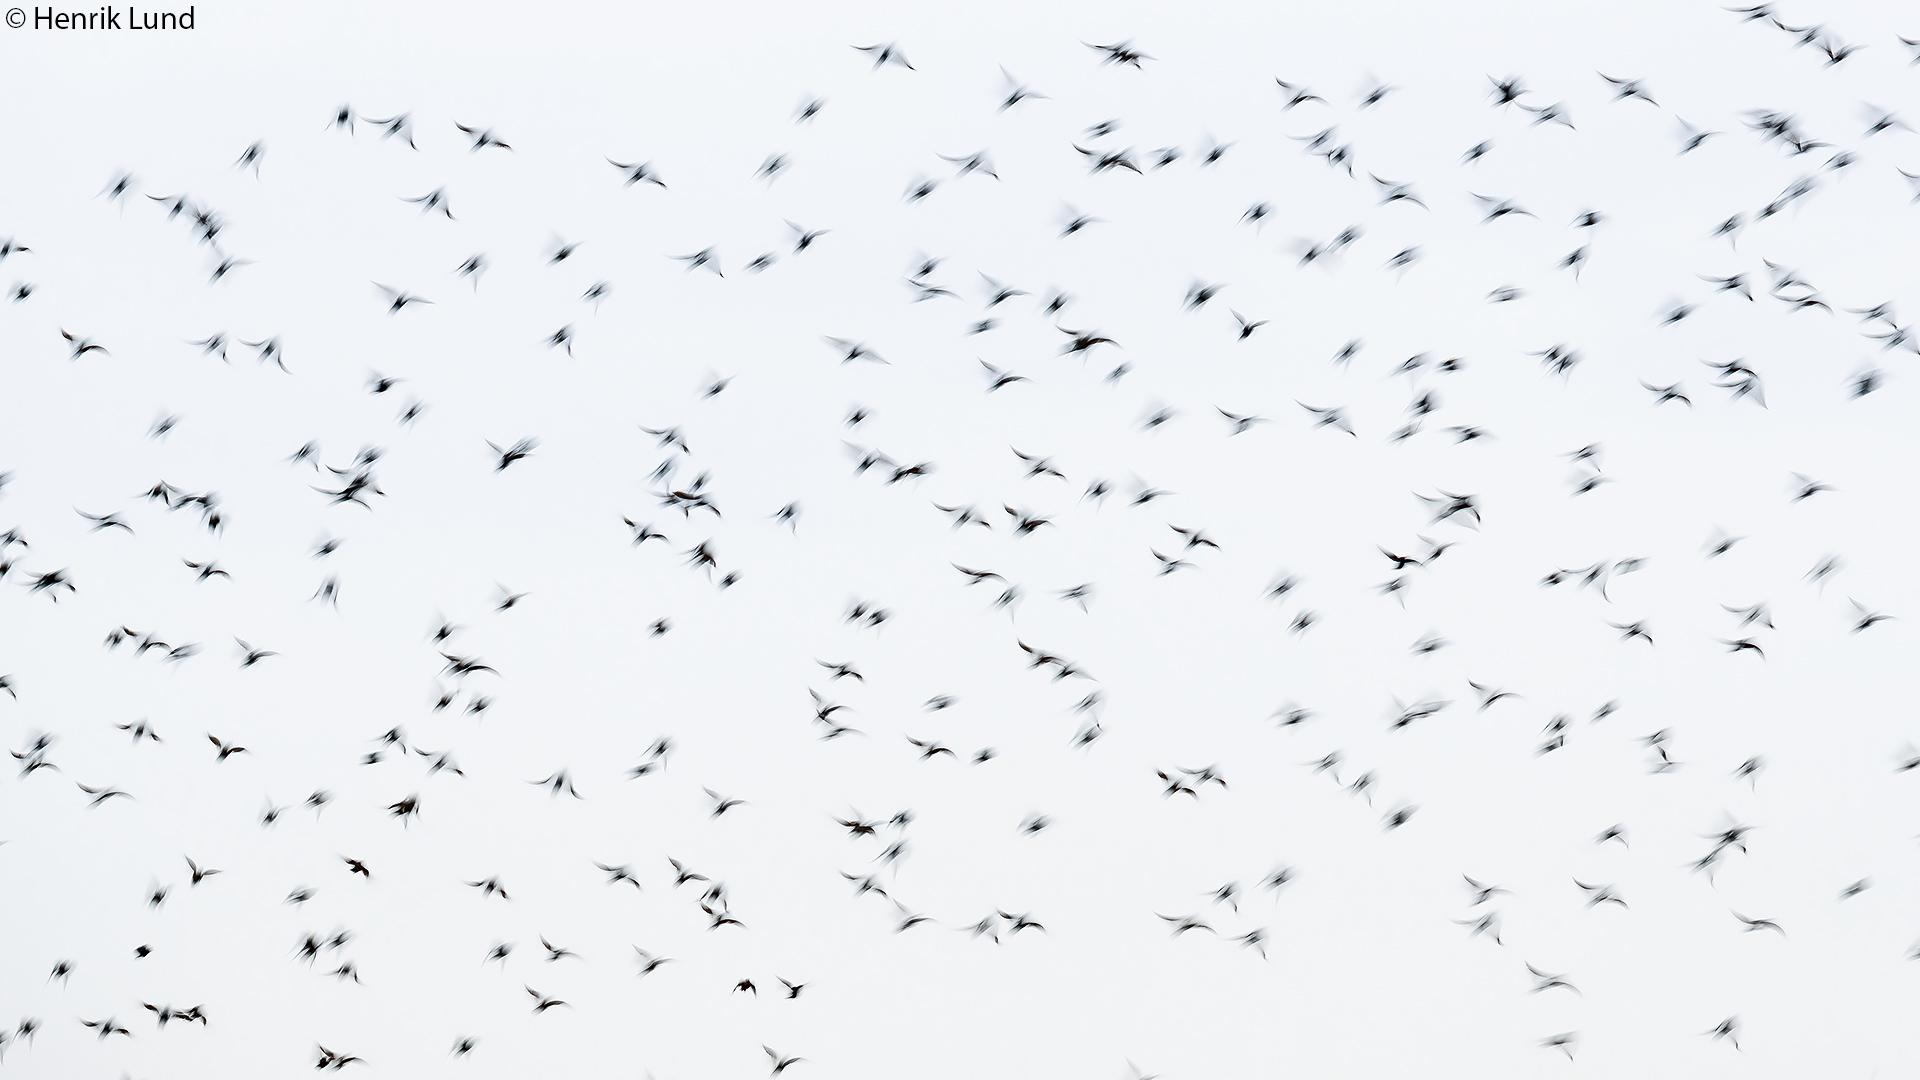 Common starling flock in flight. Lindkoski, Lappträsk, Finland. September 2017.